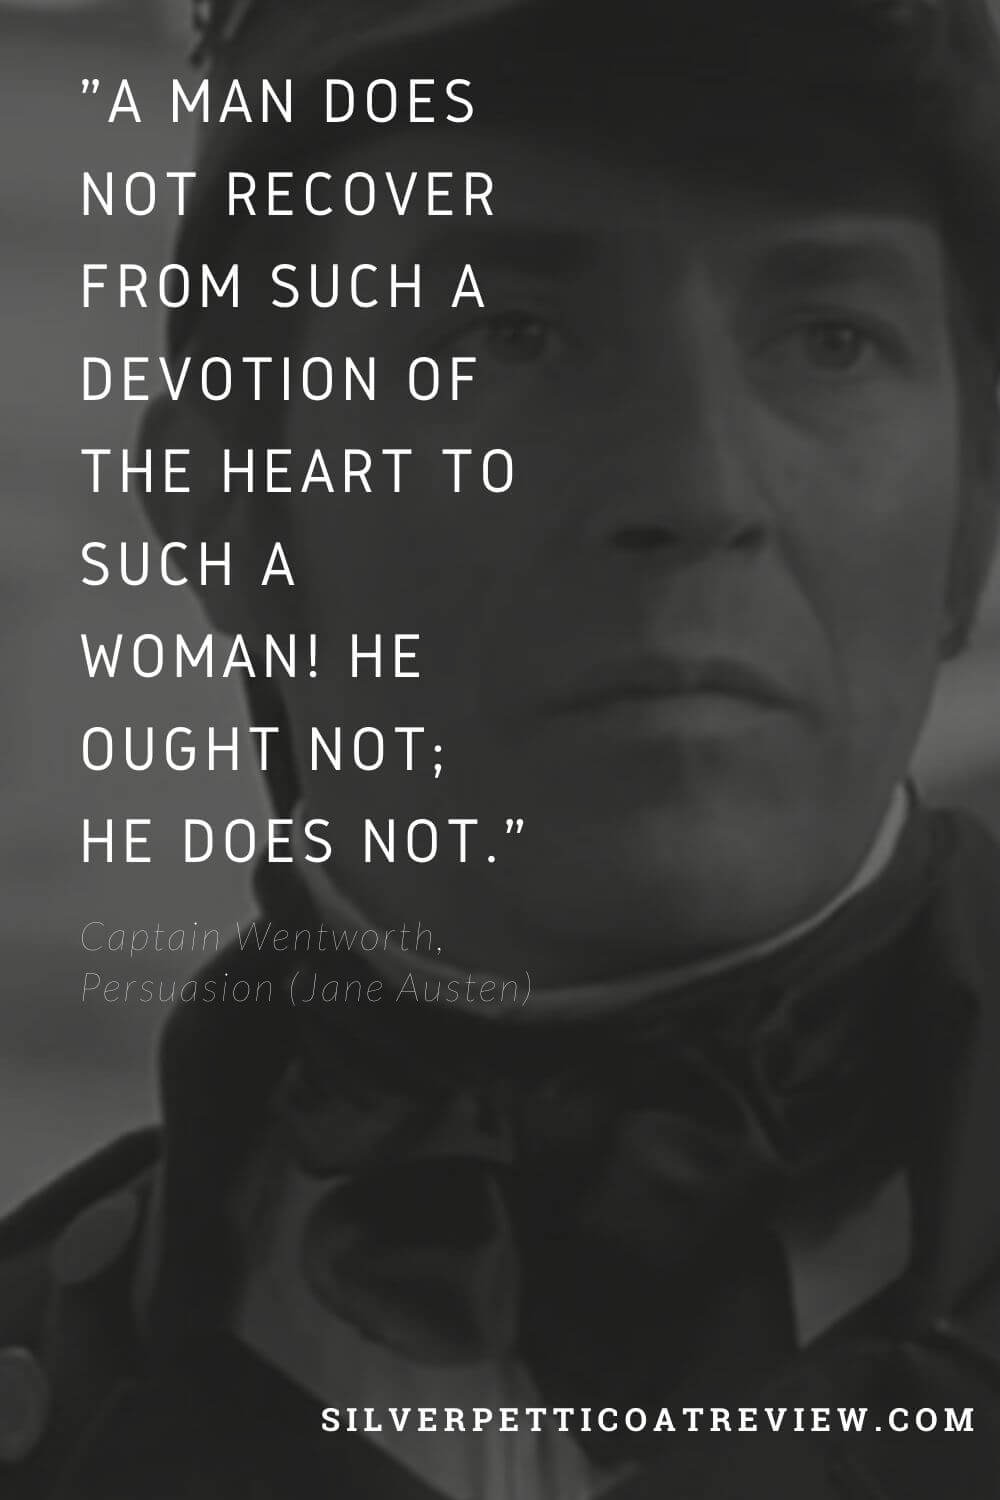 Persuasion; Jane Austen Quotes about love